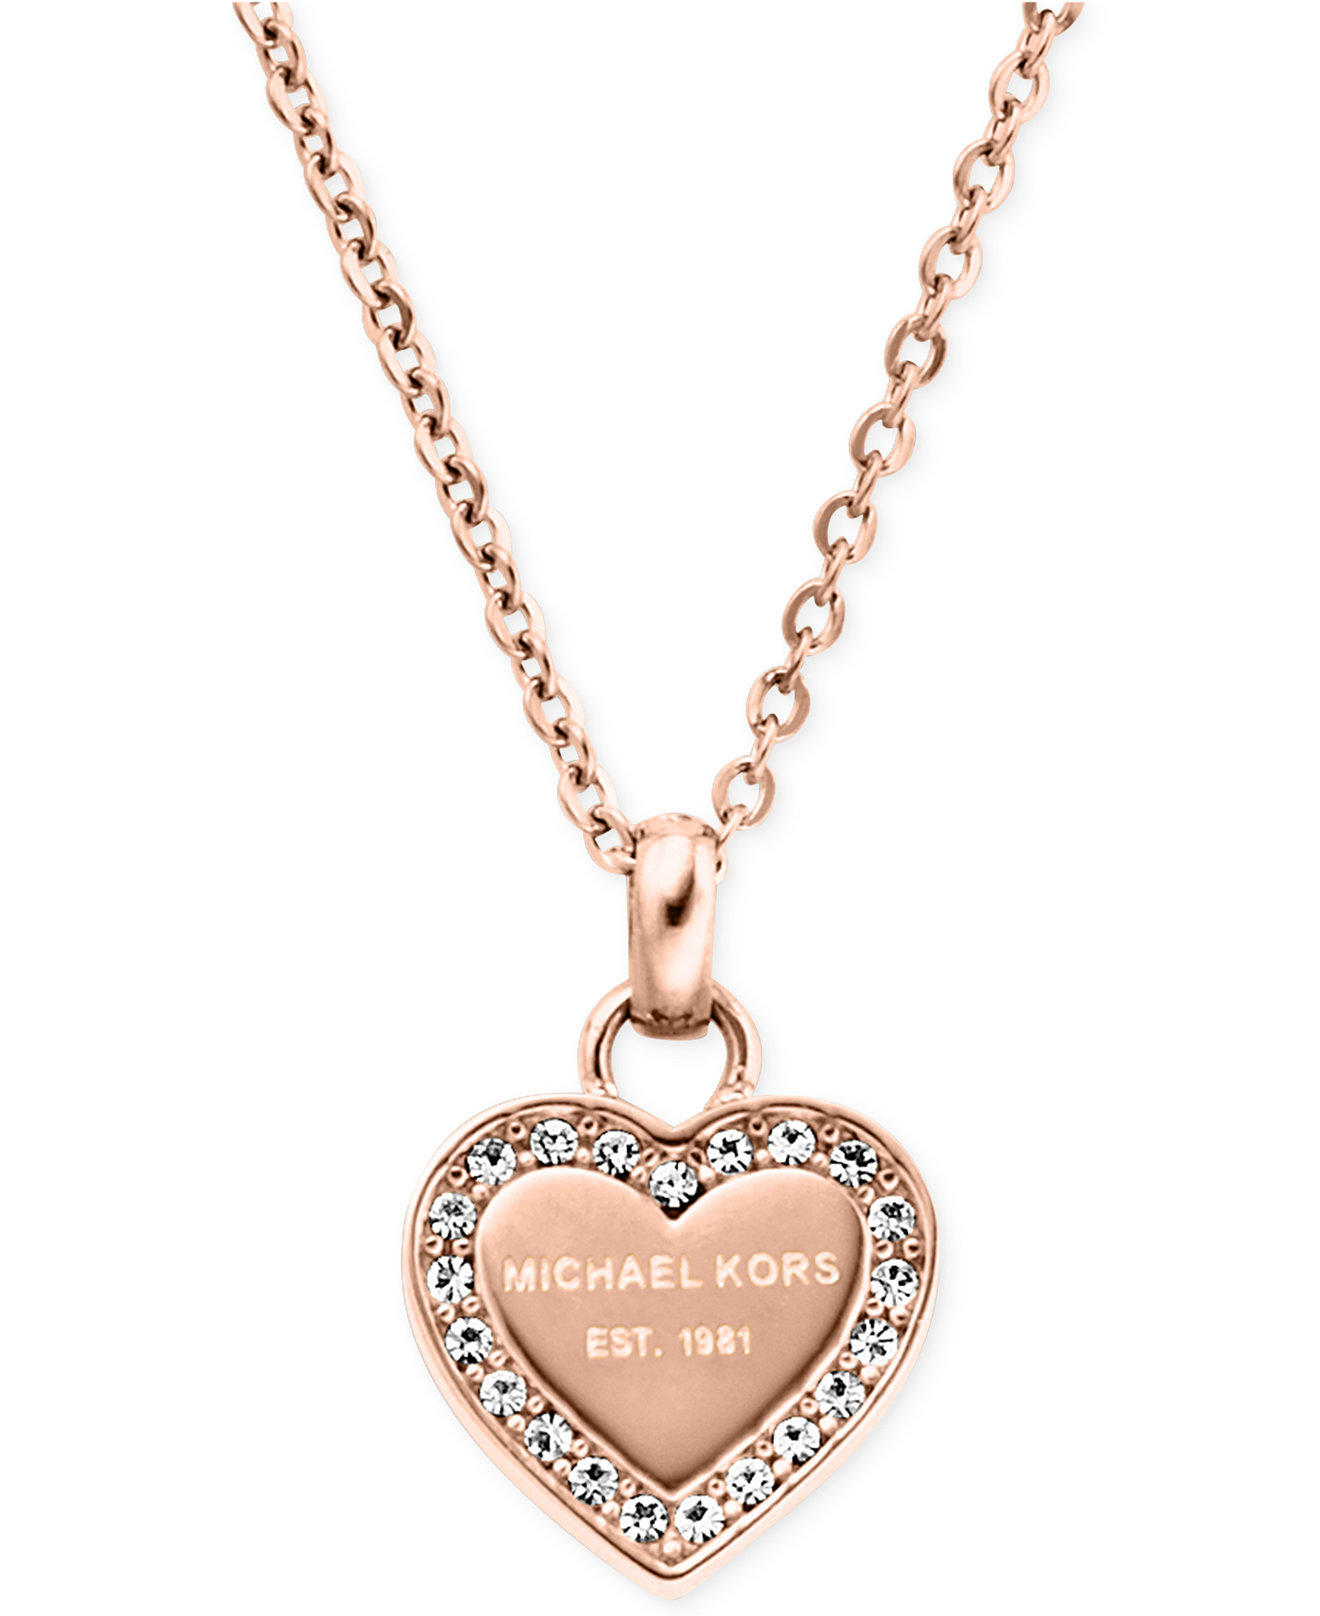 Michael kors crystal heart pendant from macys jewelry for Michael b jewelry death